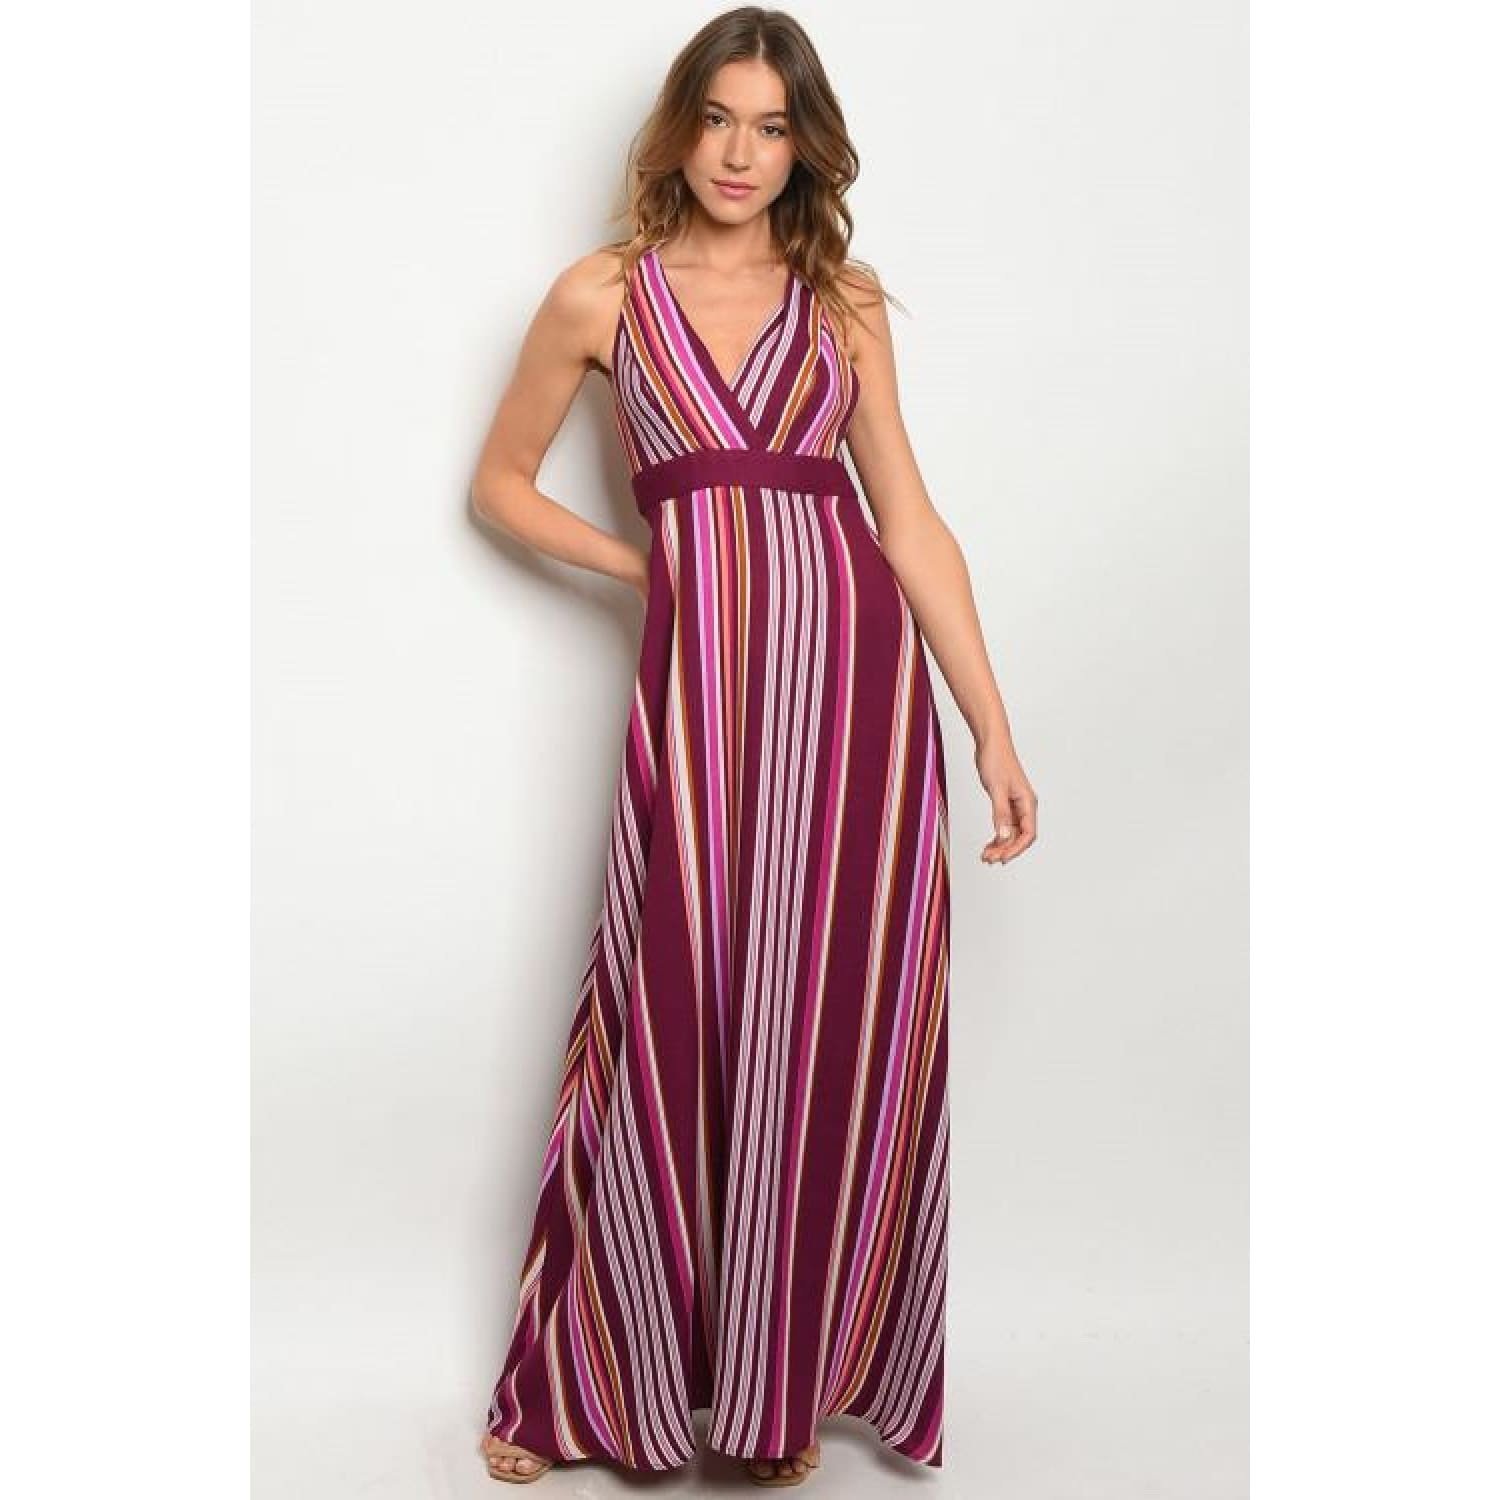 Plum and Lavender Maxi Dress - DRESSES